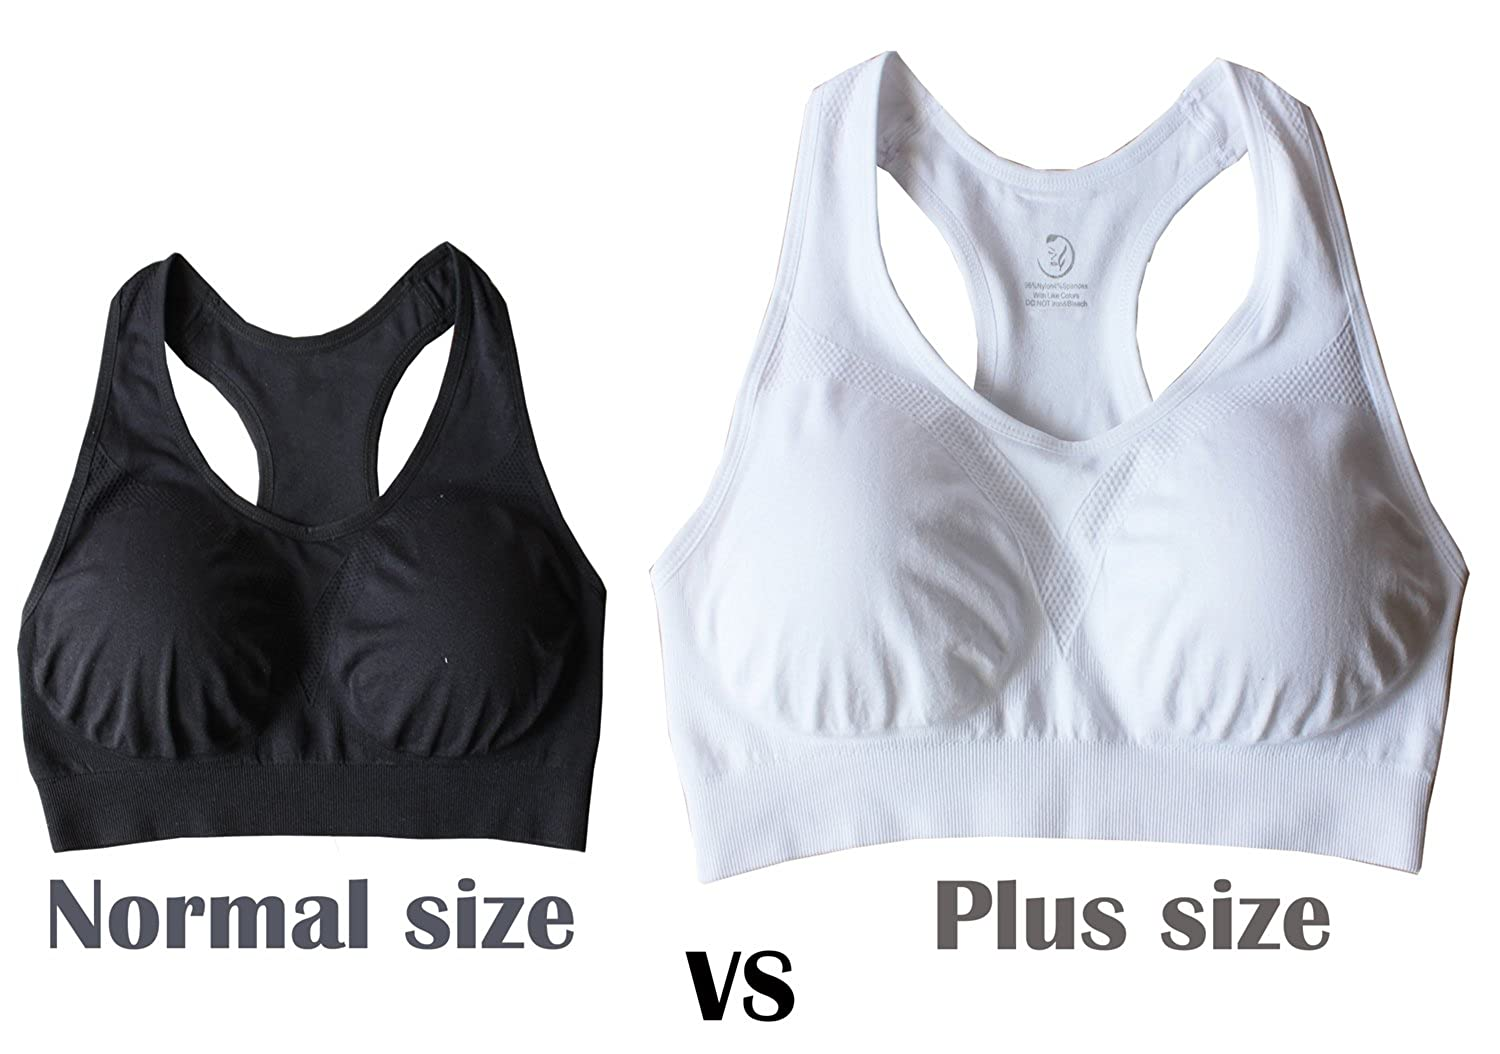 621143d84d6b1 Cabales KINYAOYAO Women s Plus Size Ultimate Comfy Medium Support Sport Bra  3 Pack at Amazon Women s Clothing store